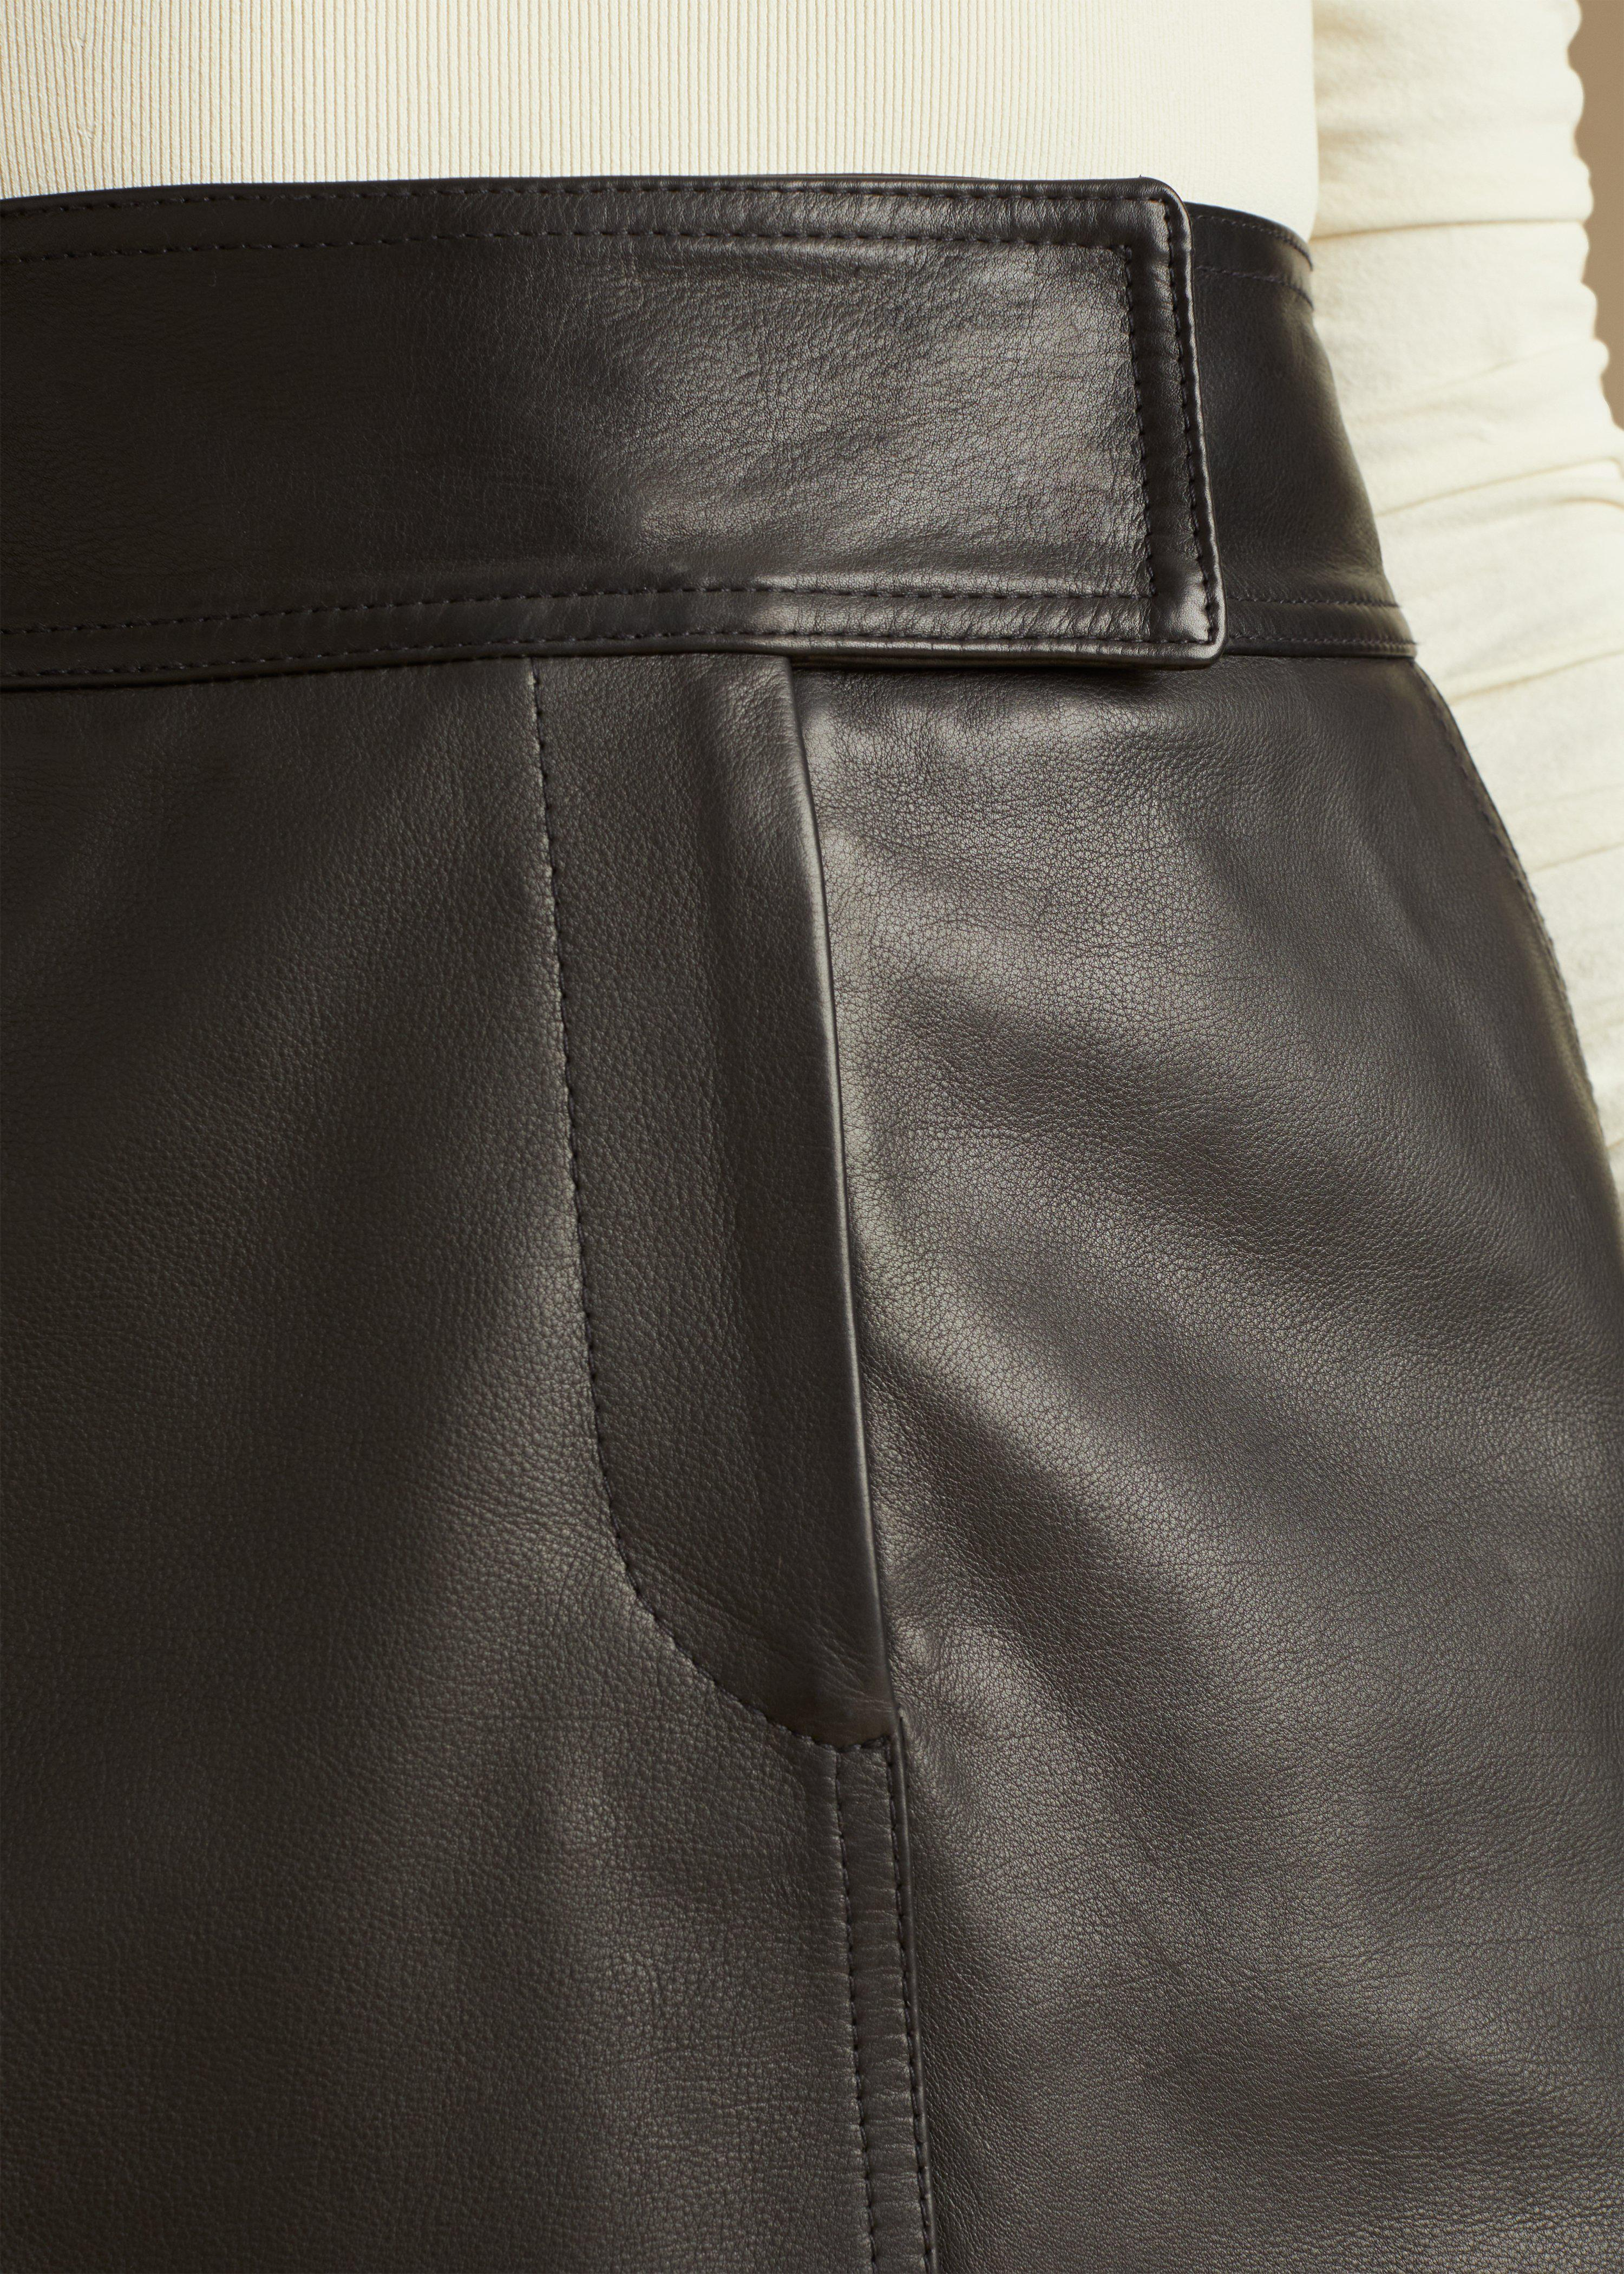 The Giulia Skirt in Black Leather 7